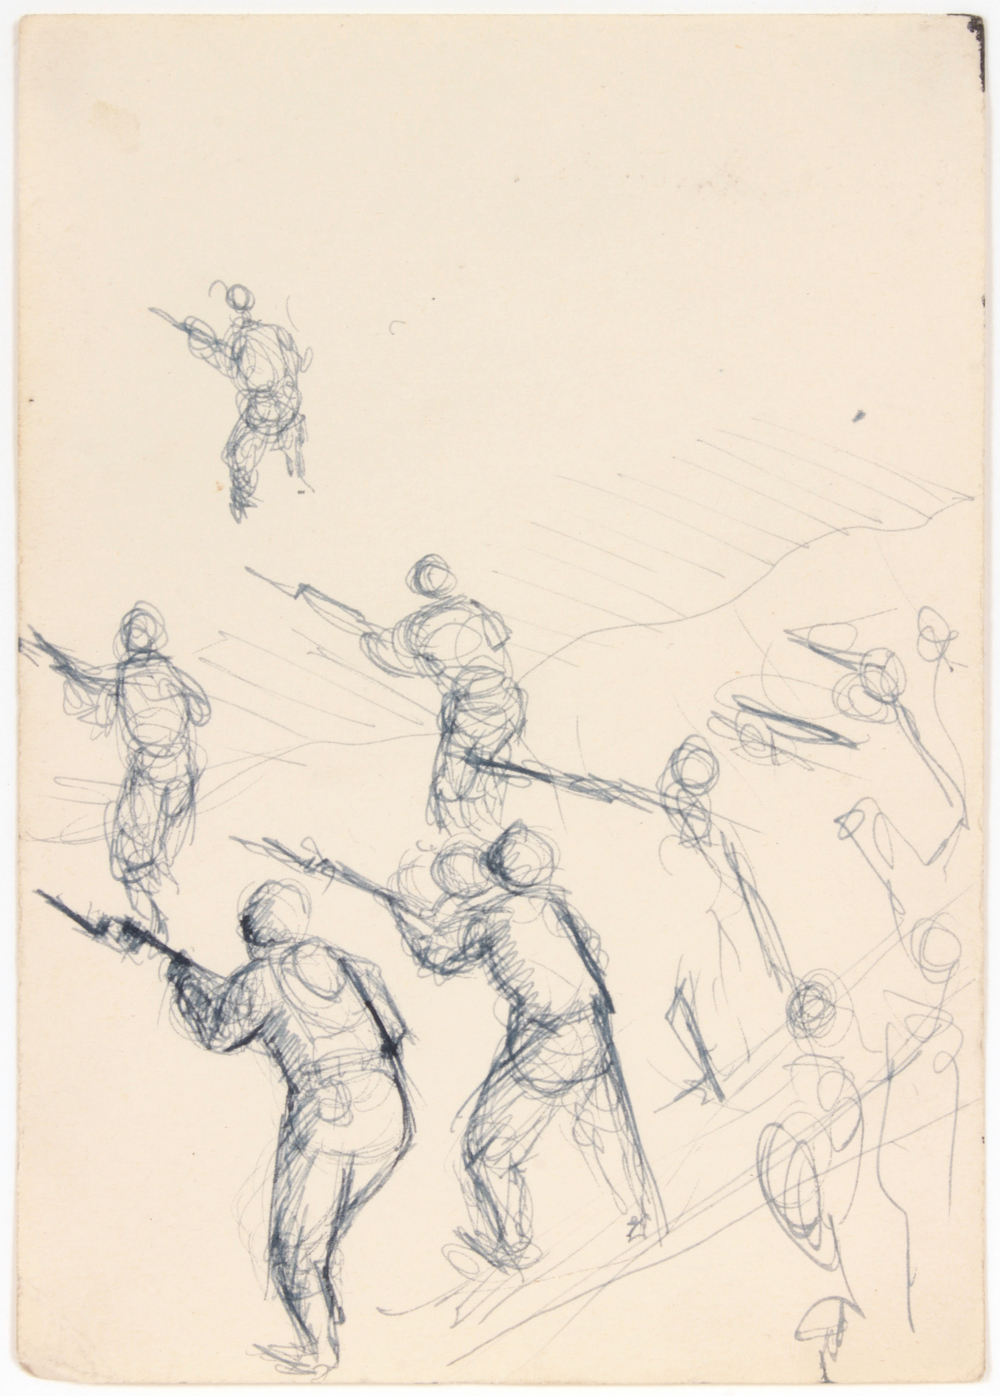 5. 1943 Summer, NT (Training Sodiers), Pen and Ink on Paper, 6.75x4.75, PPS 1529.jpg